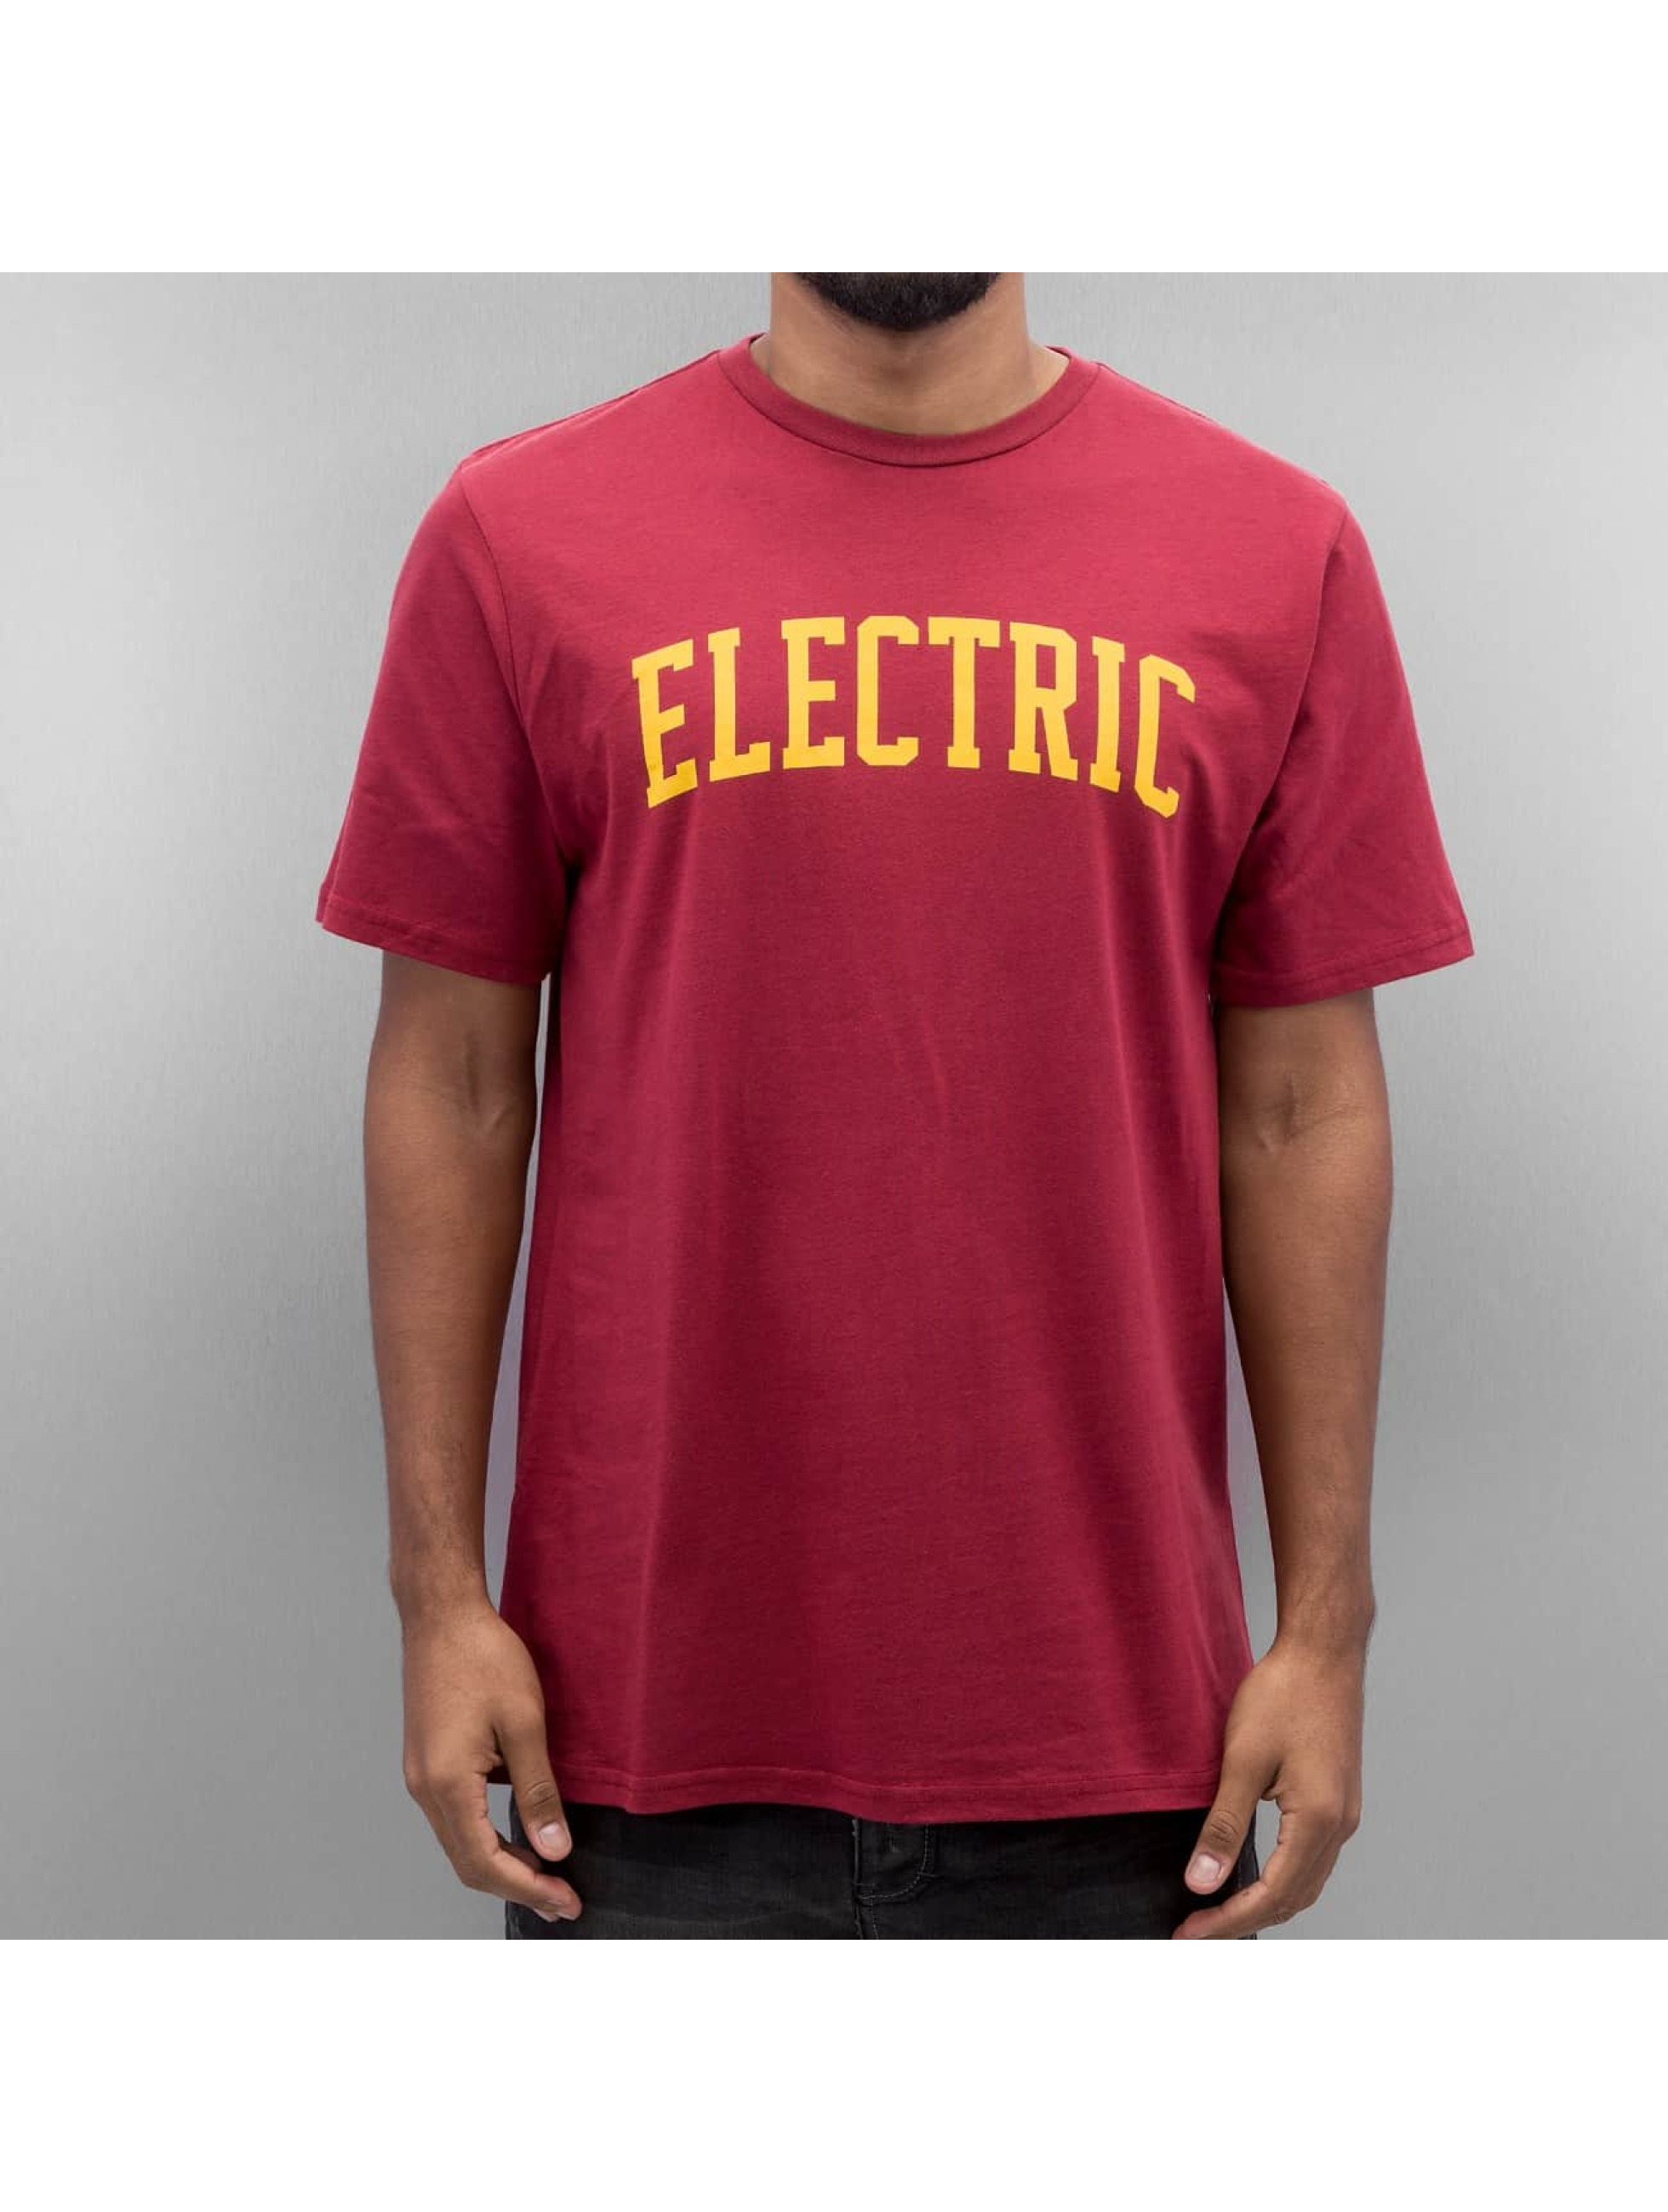 Electric Männer T-Shirt COLLEGE in rot